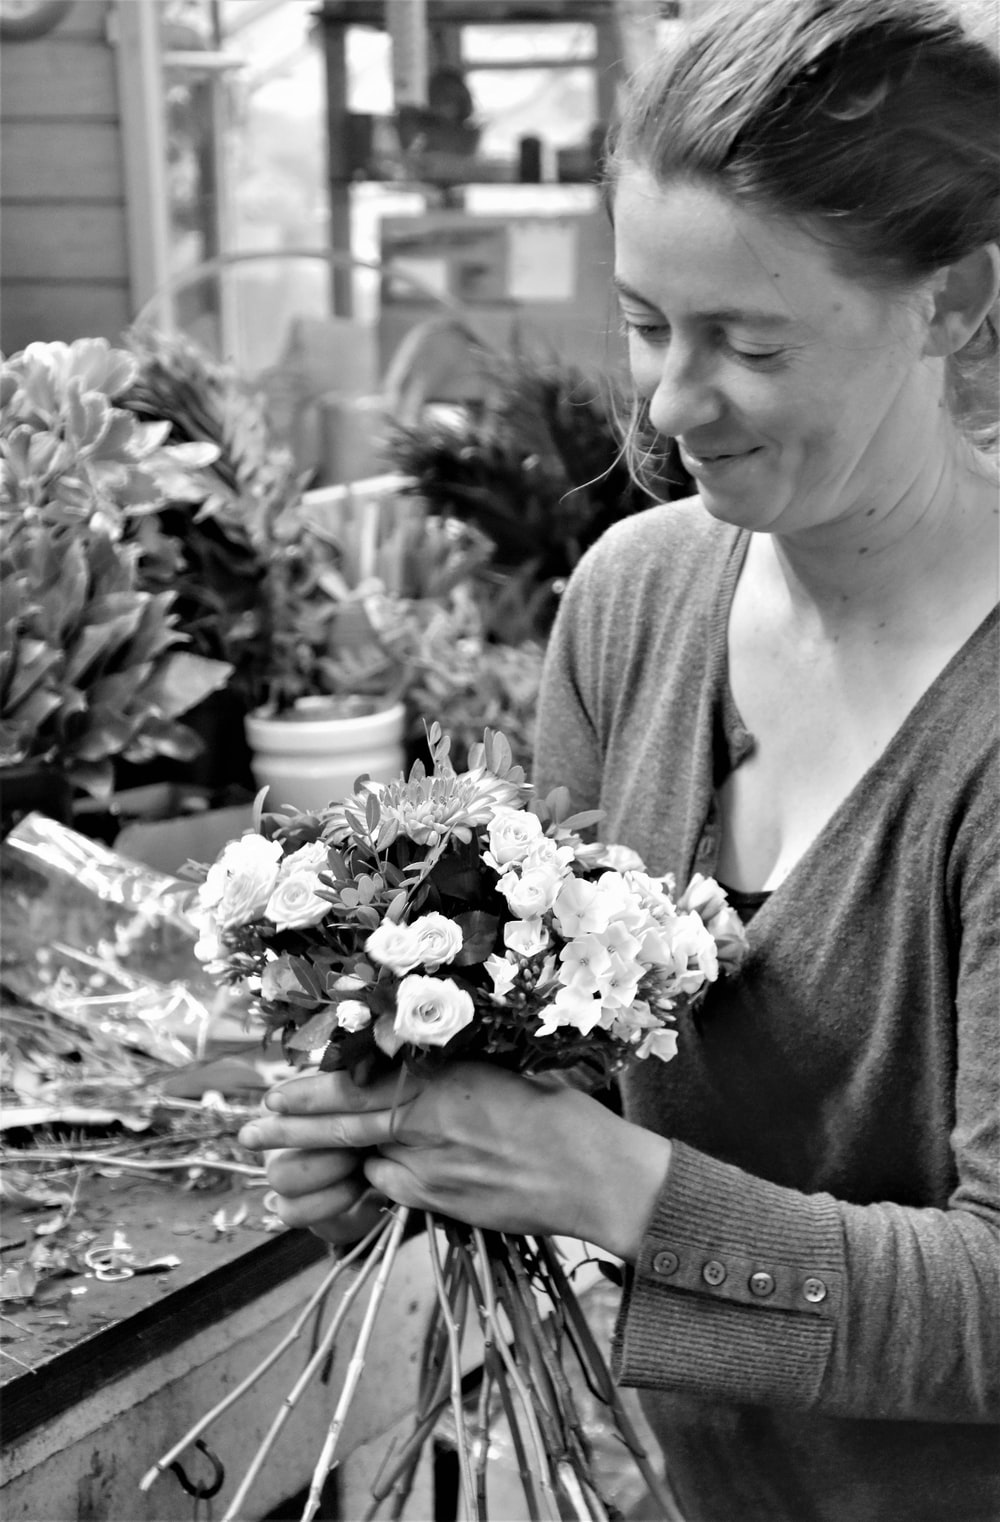 greyscale photography of man arranging flowers